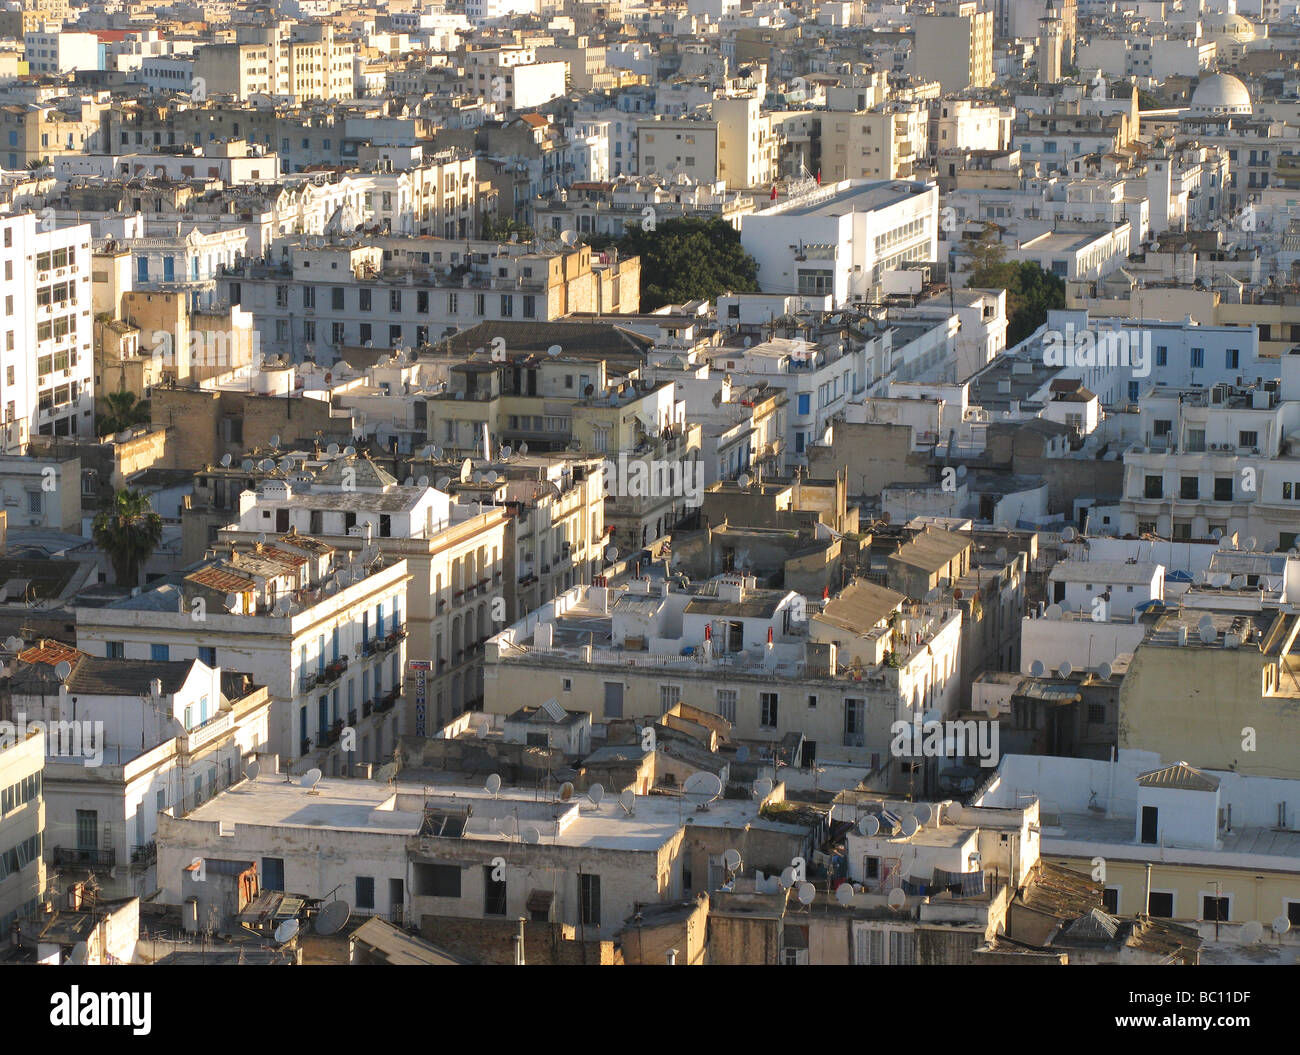 TUNIS, TUNISIA. An evening view over the city centre. 2009. - Stock Image